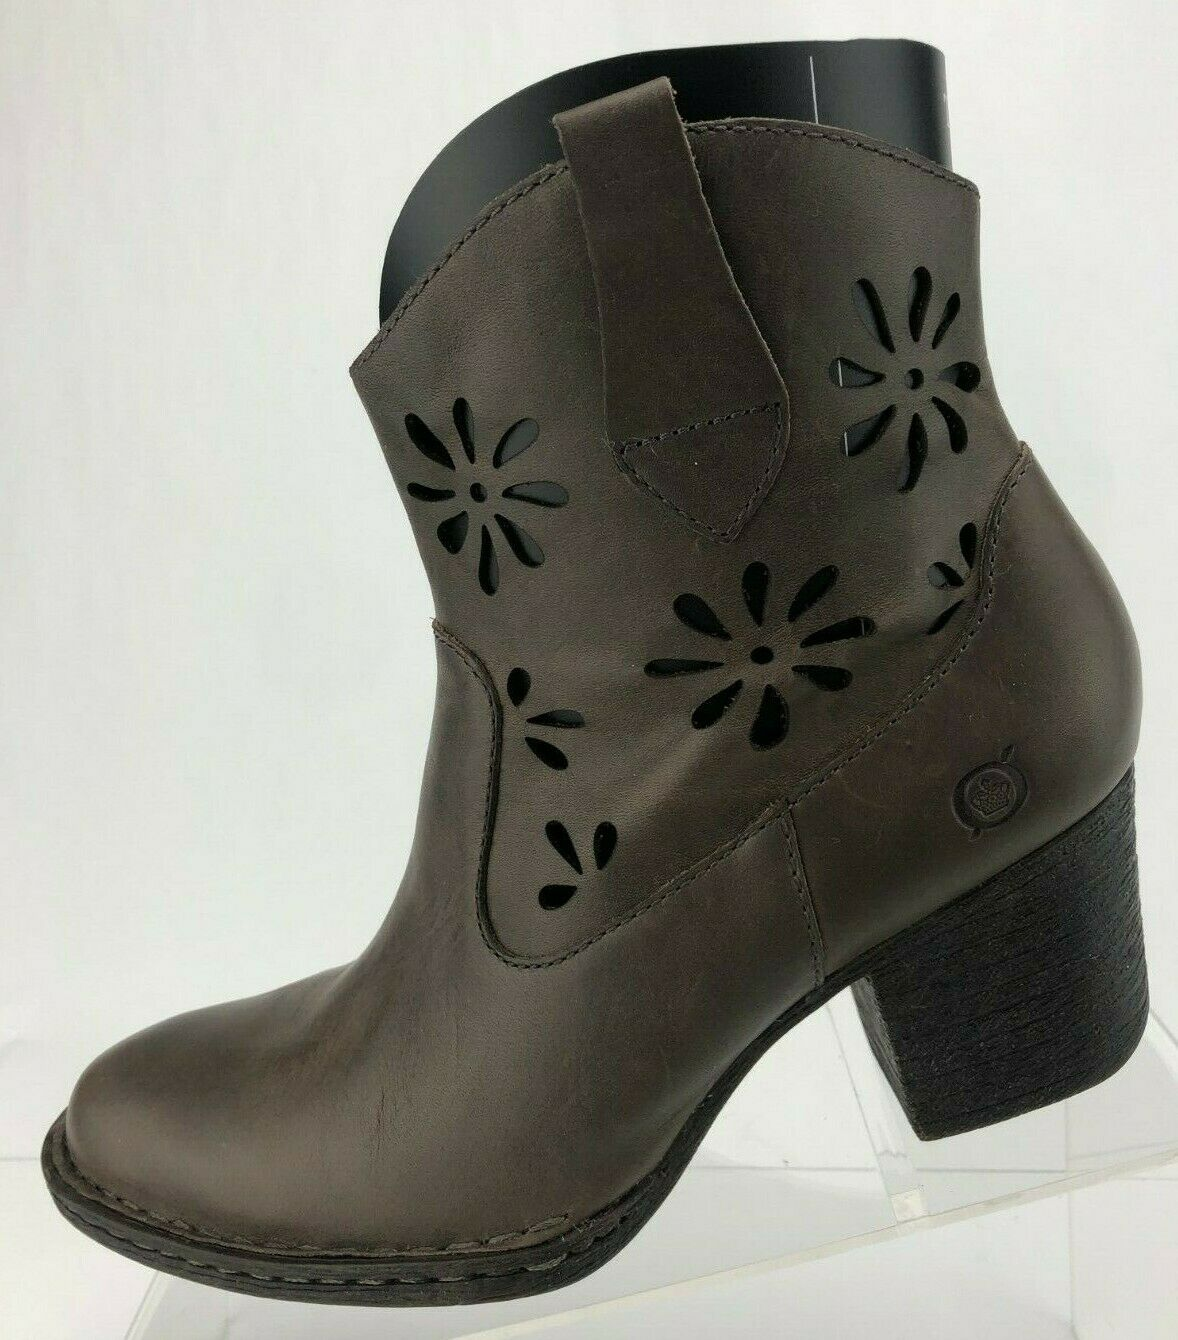 Born Ankle Stiefel Ivy Floral Cutout braun Leather Zip Casual Stiefelies damen 7 M